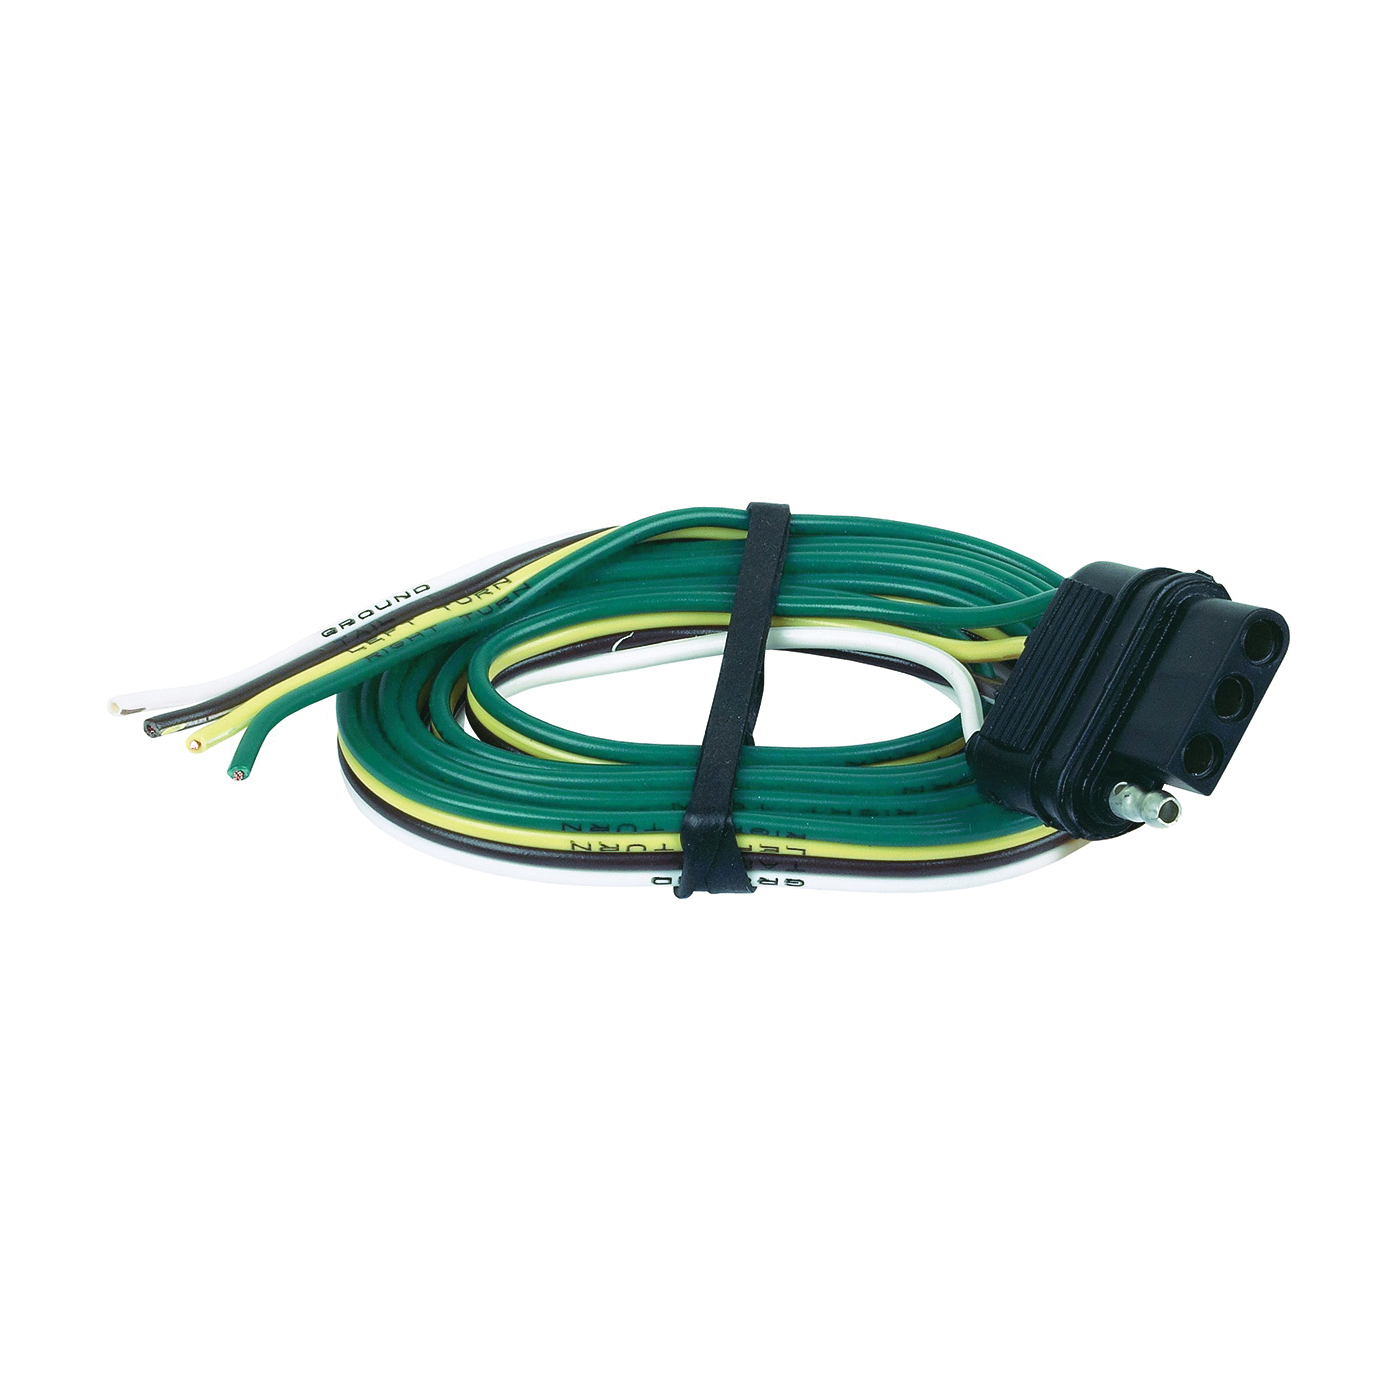 Picture of HOPKINS 48035 Trailer Wiring Connector, 48 in L